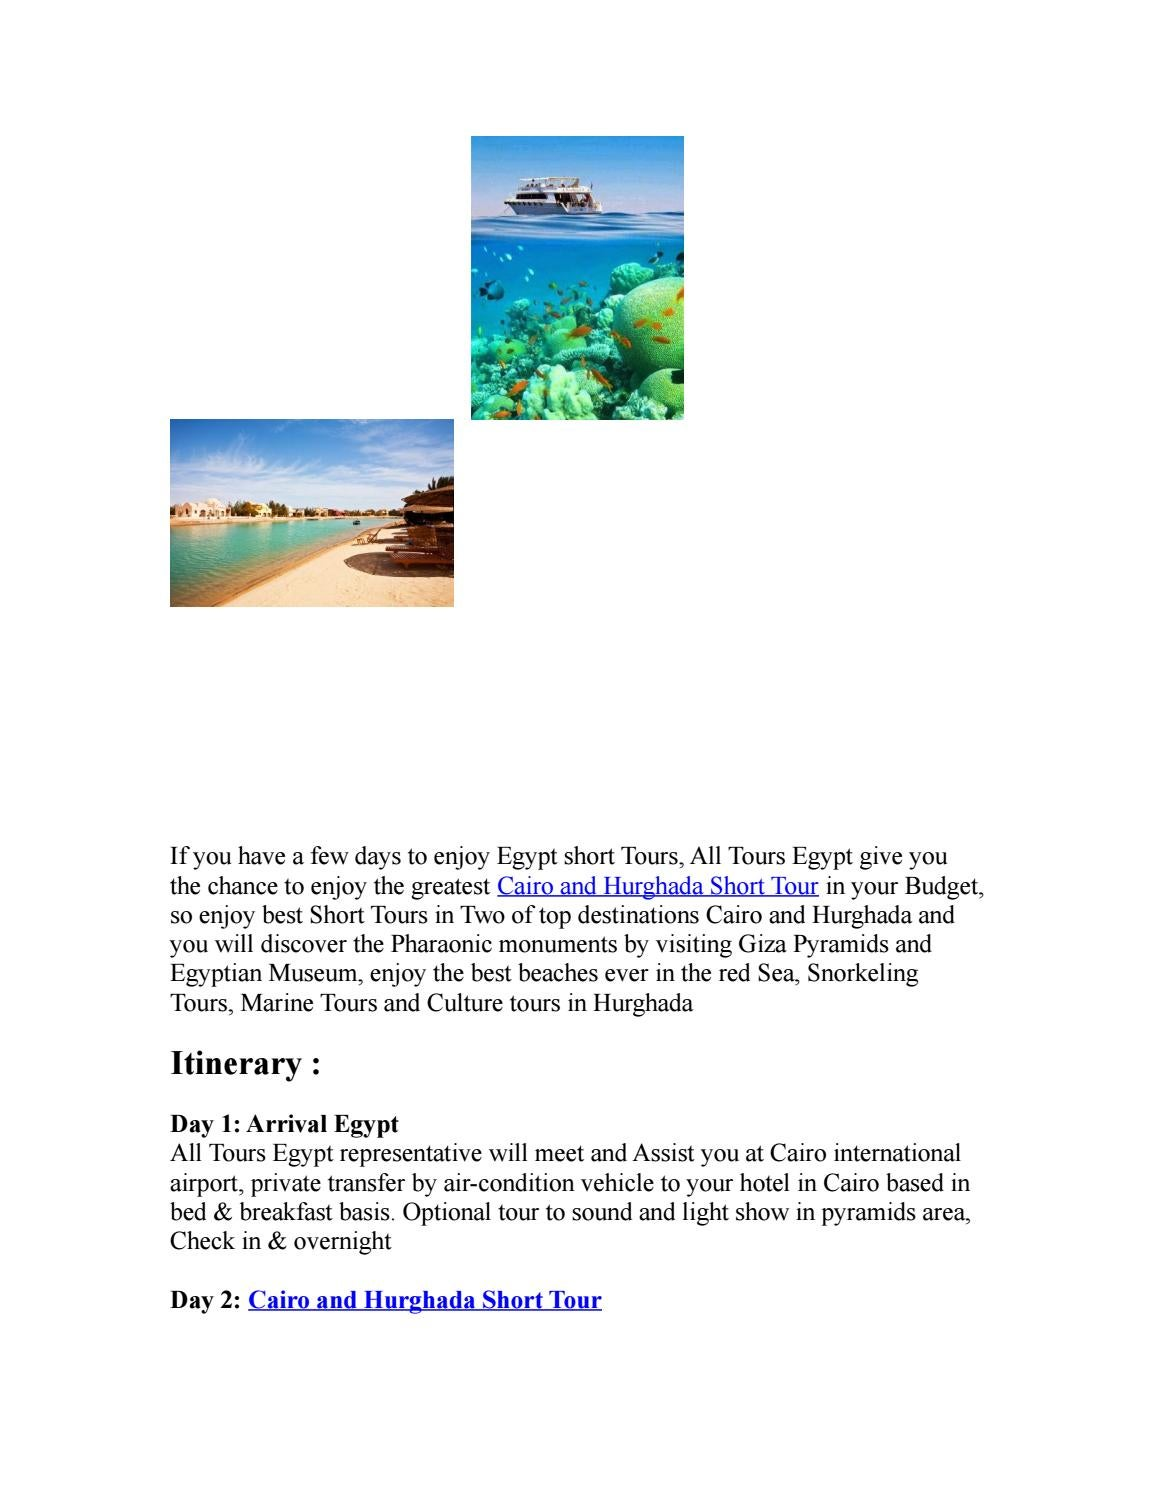 Cairo and hurghada short tour 2 by AllTours Egypt - issuu